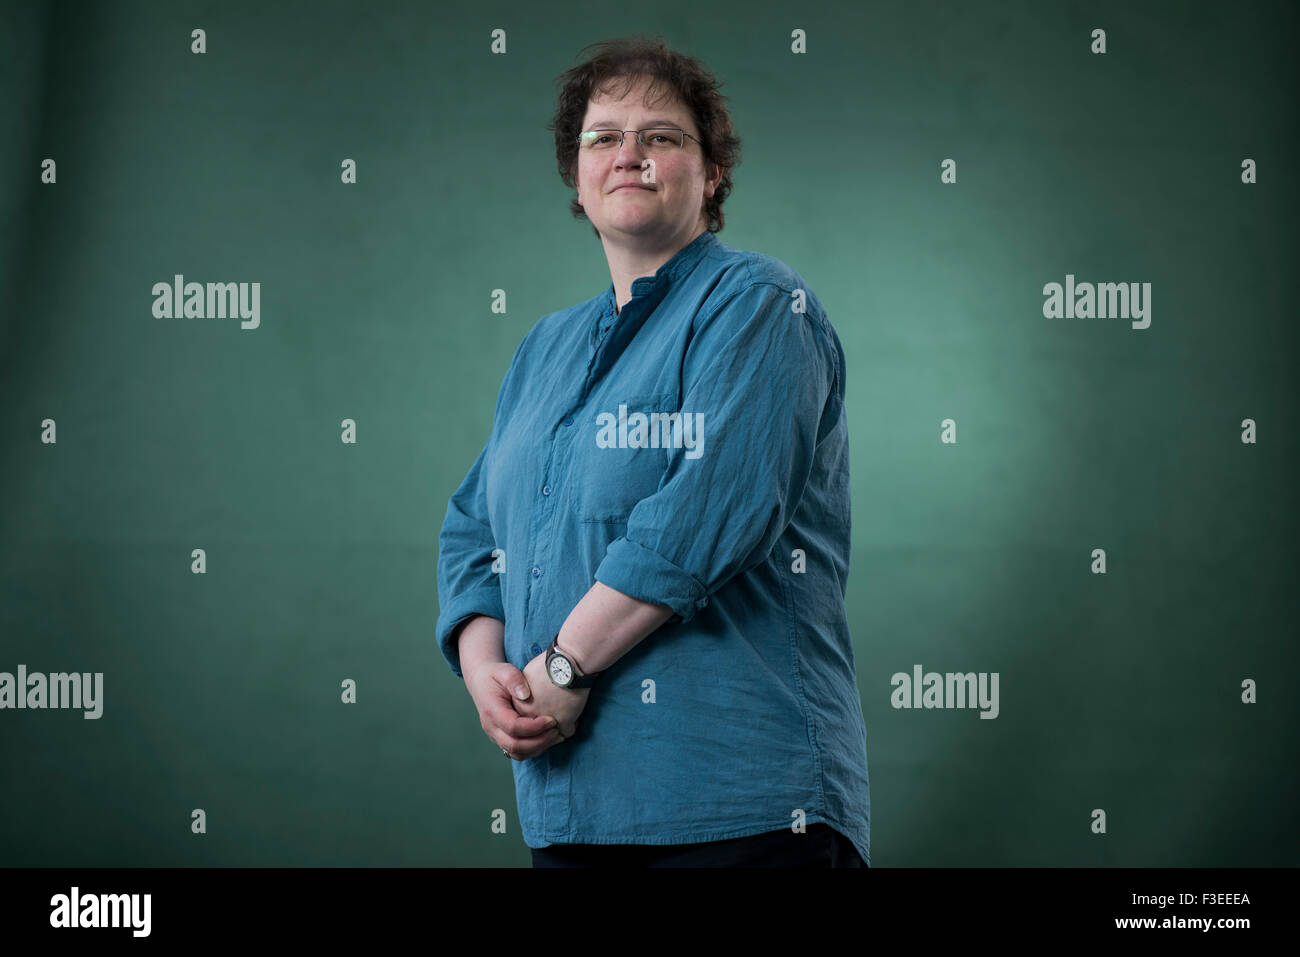 Professor of Forensic Science Niamh Nic Daed. - Stock Image